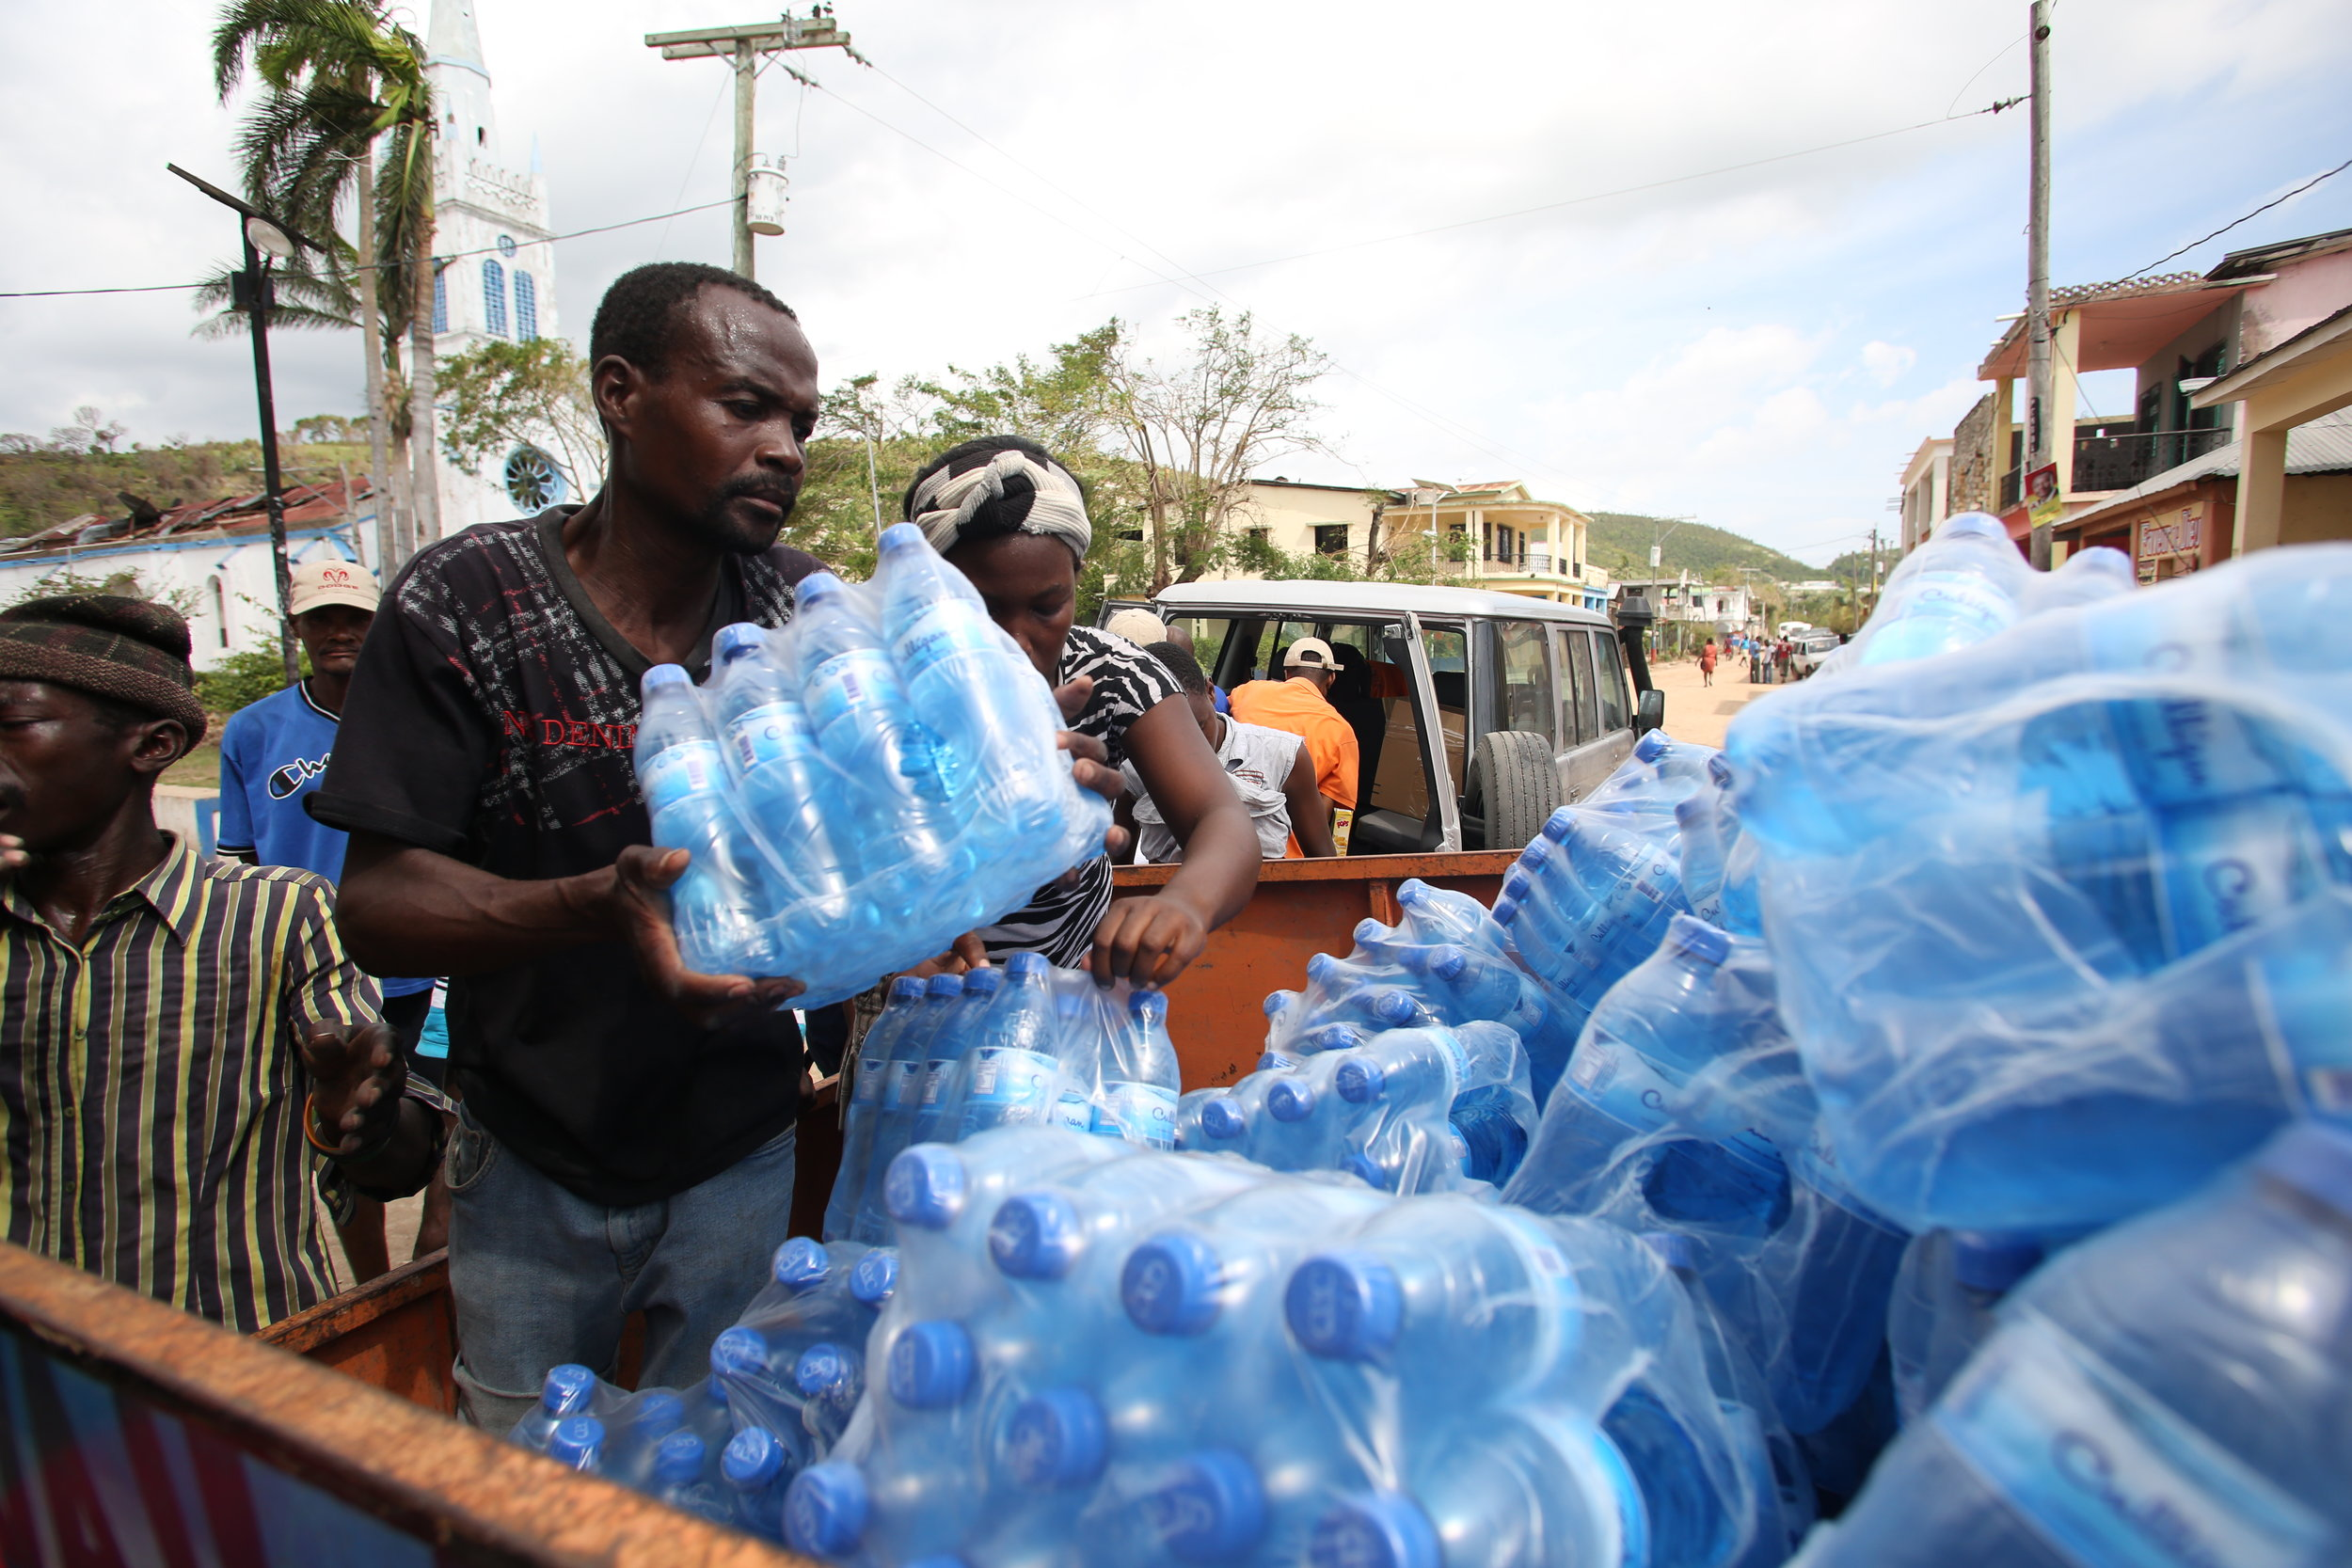 PADF staff deliver clean water to families affected by Hurricane Matthew in Cavaillon, Haiti (Jeanty Junior Augustin)